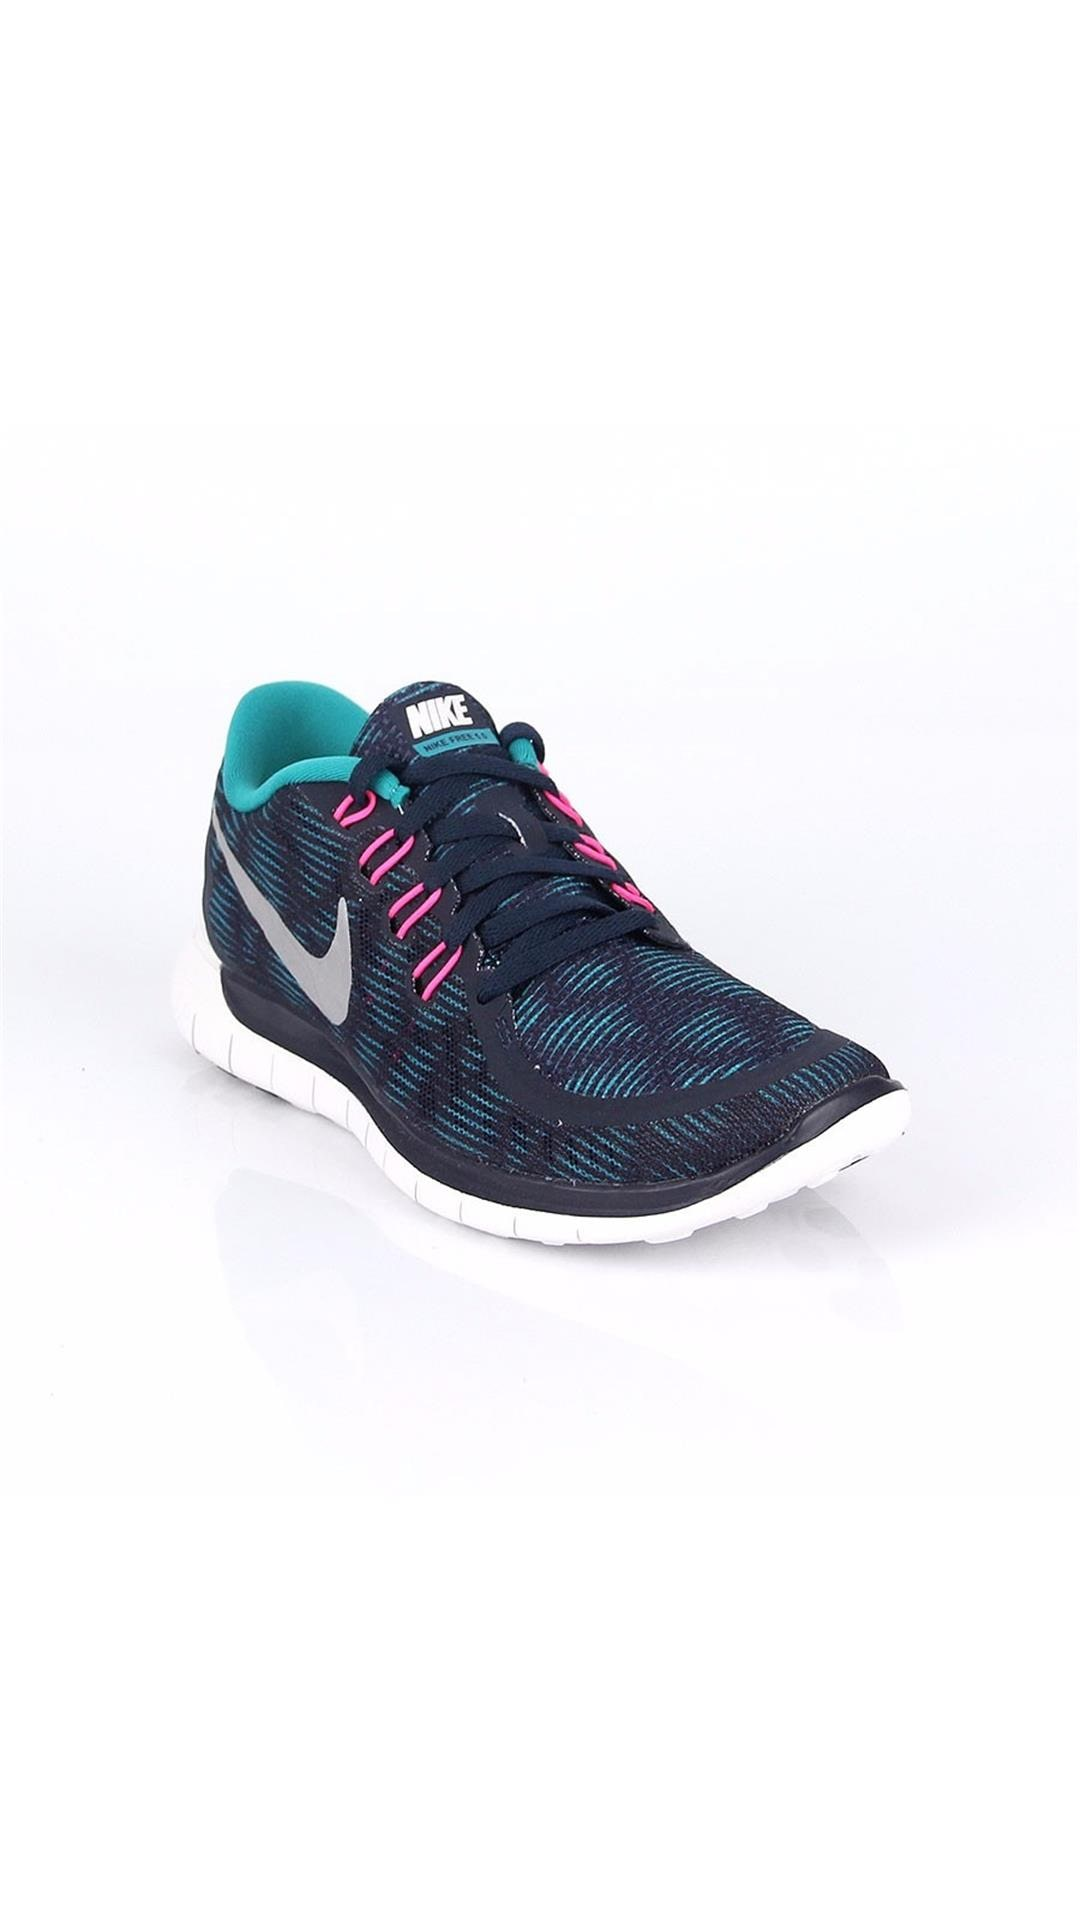 3edb47cf321c4 ... good nike womens free 5.0 print obsidian running shoes 56069 f5a76